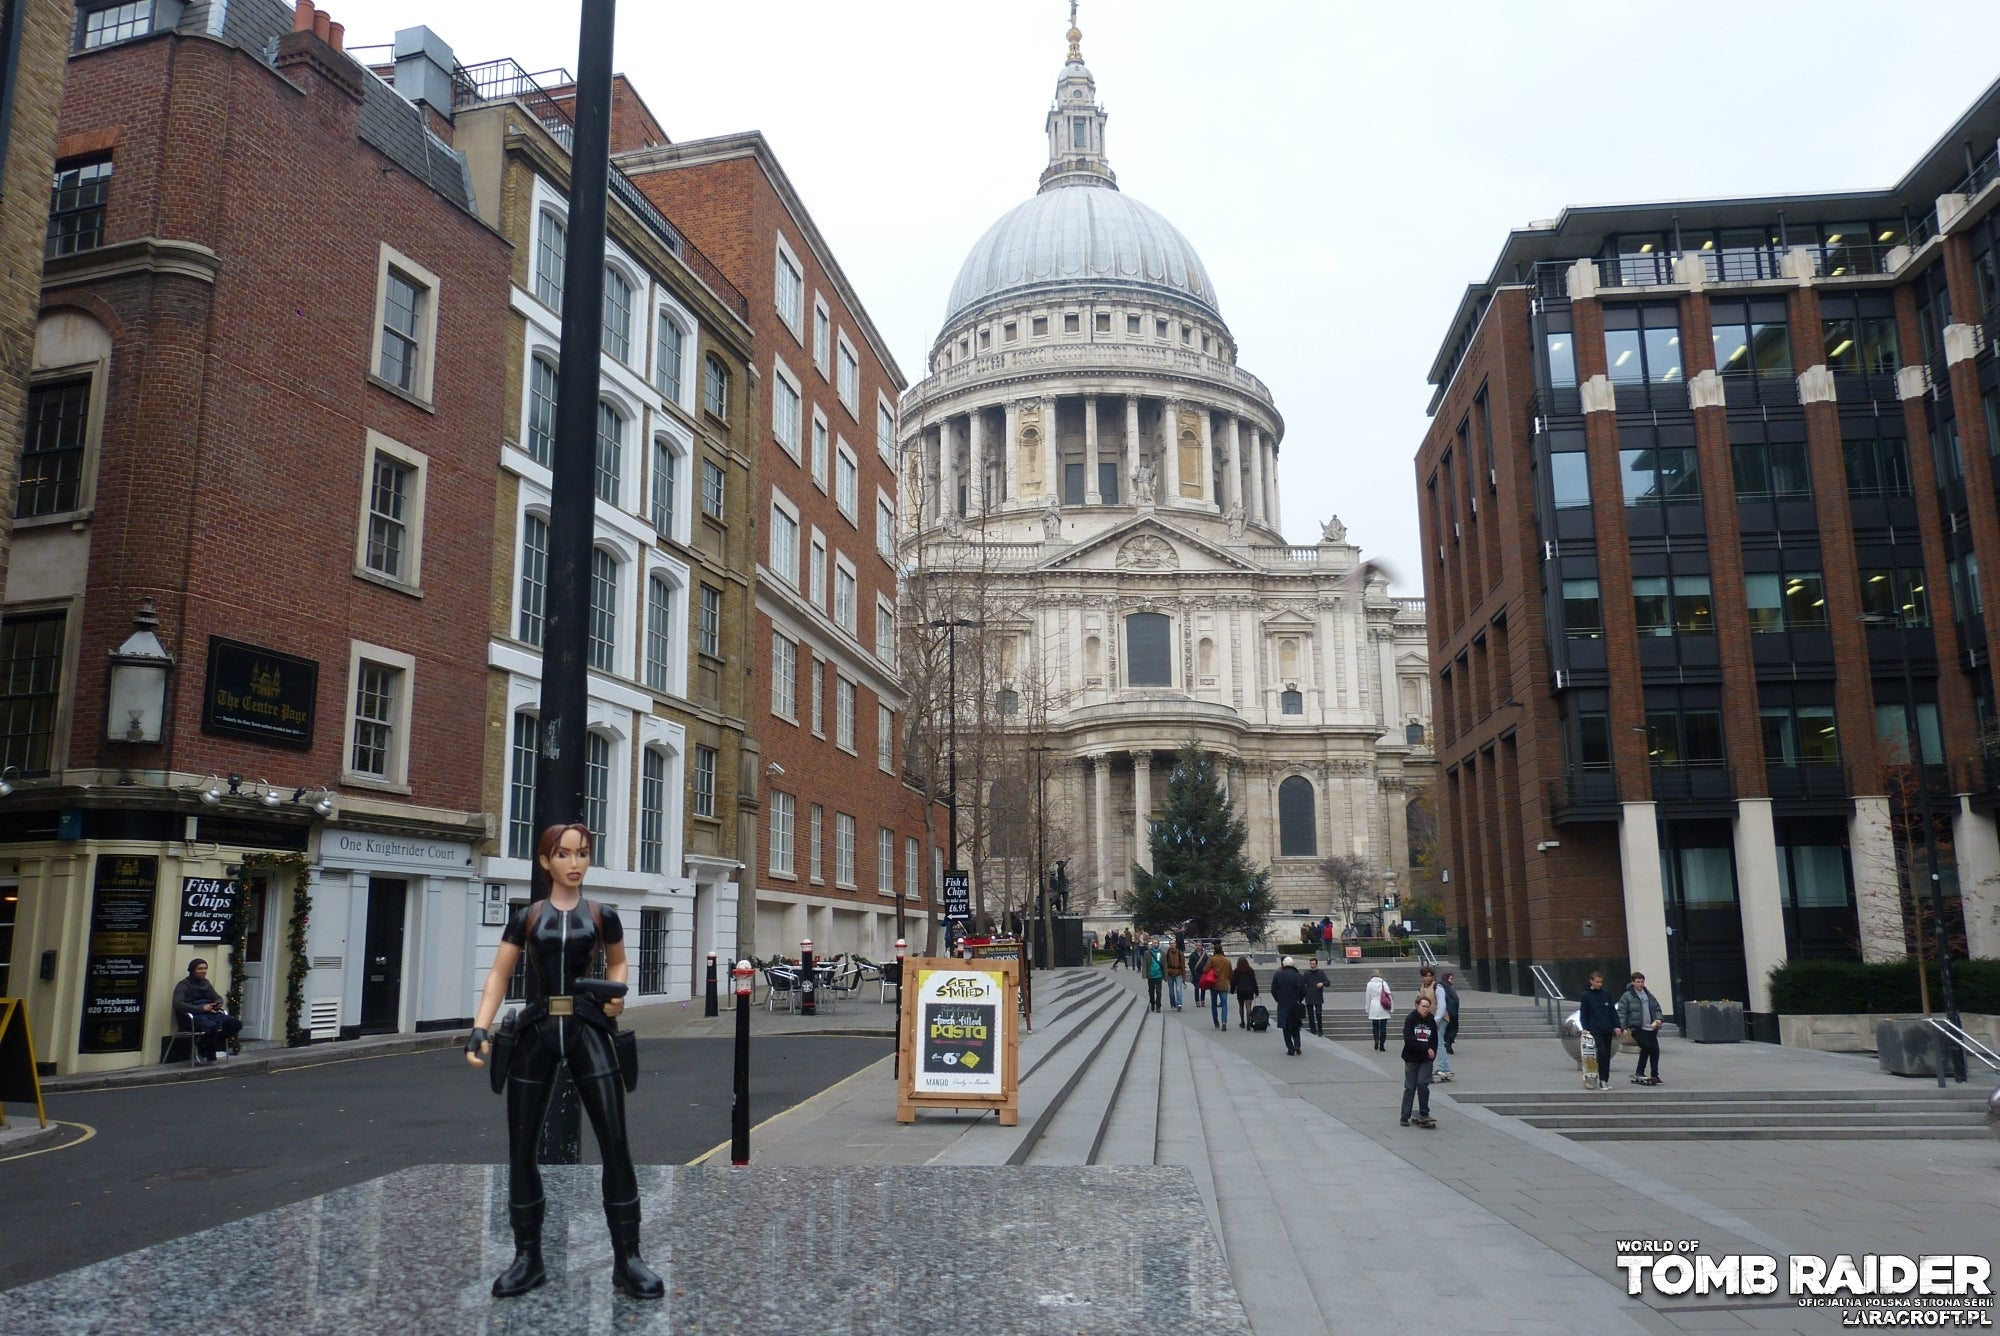 A photograph of a Lara Croft figure in front of St Pauls Cathedral